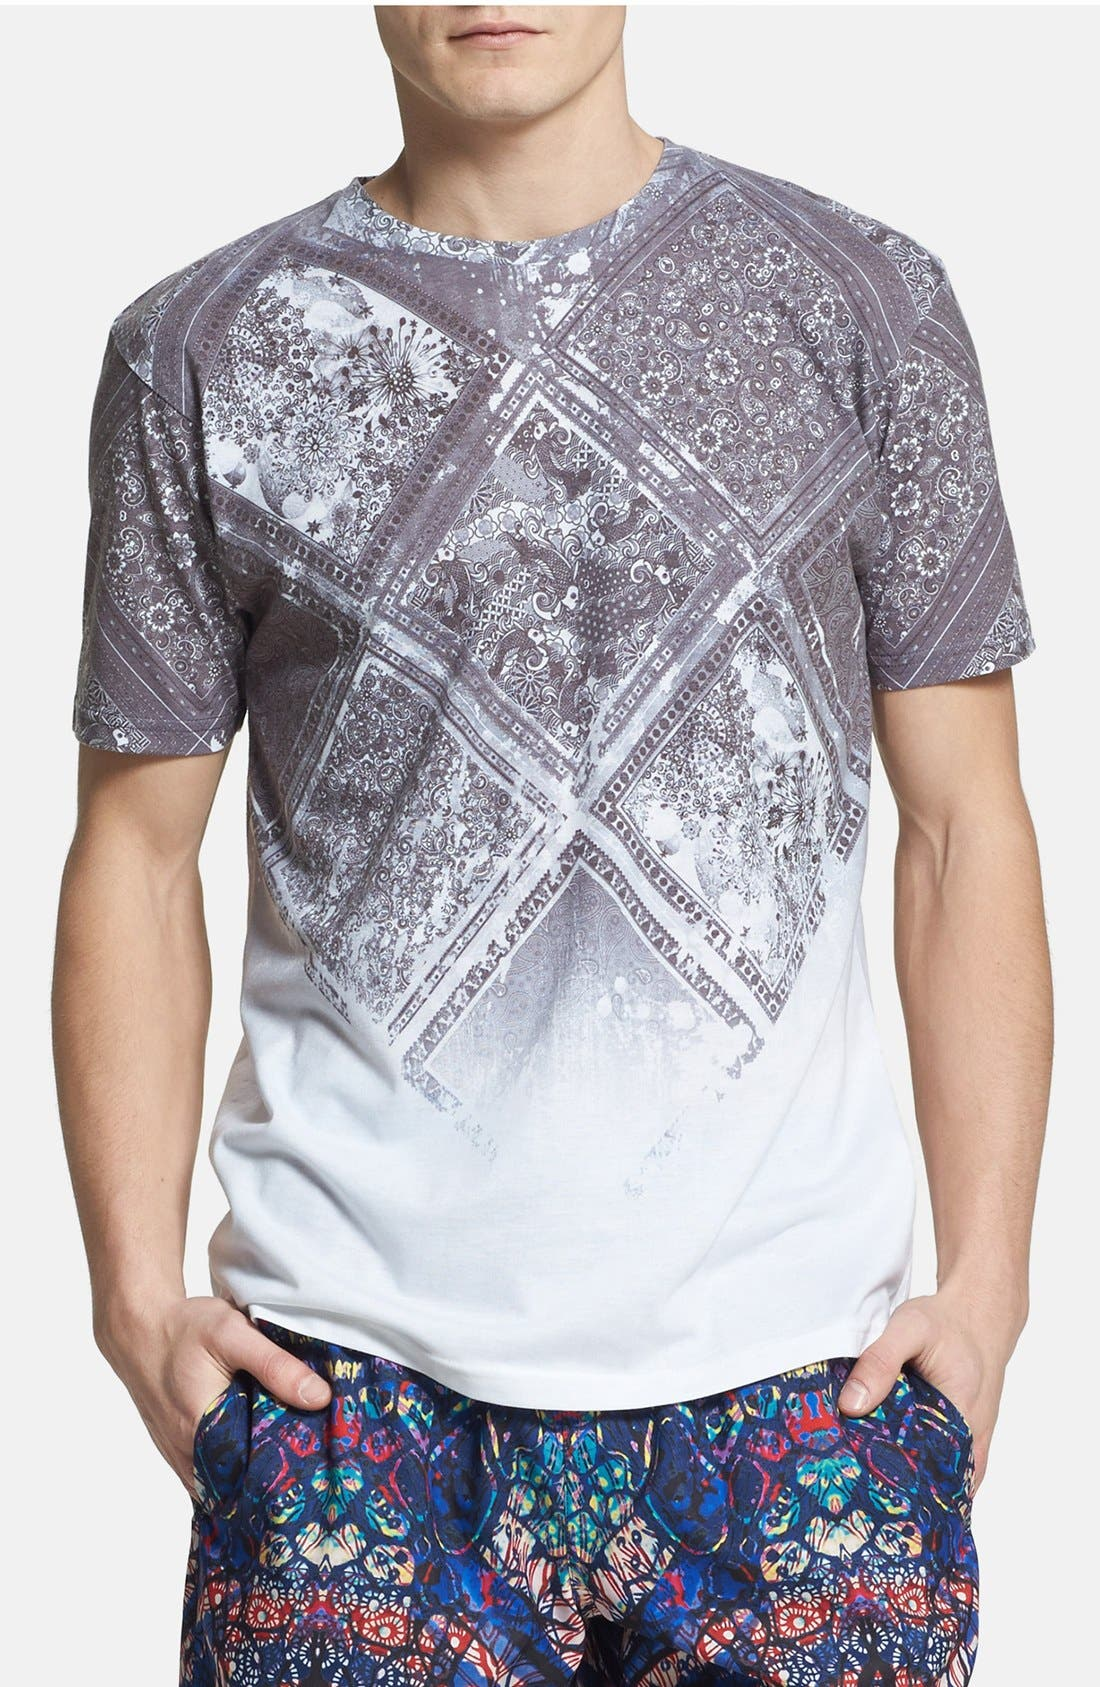 Alternate Image 1 Selected - Topman Paisley Tile Print T-Shirt